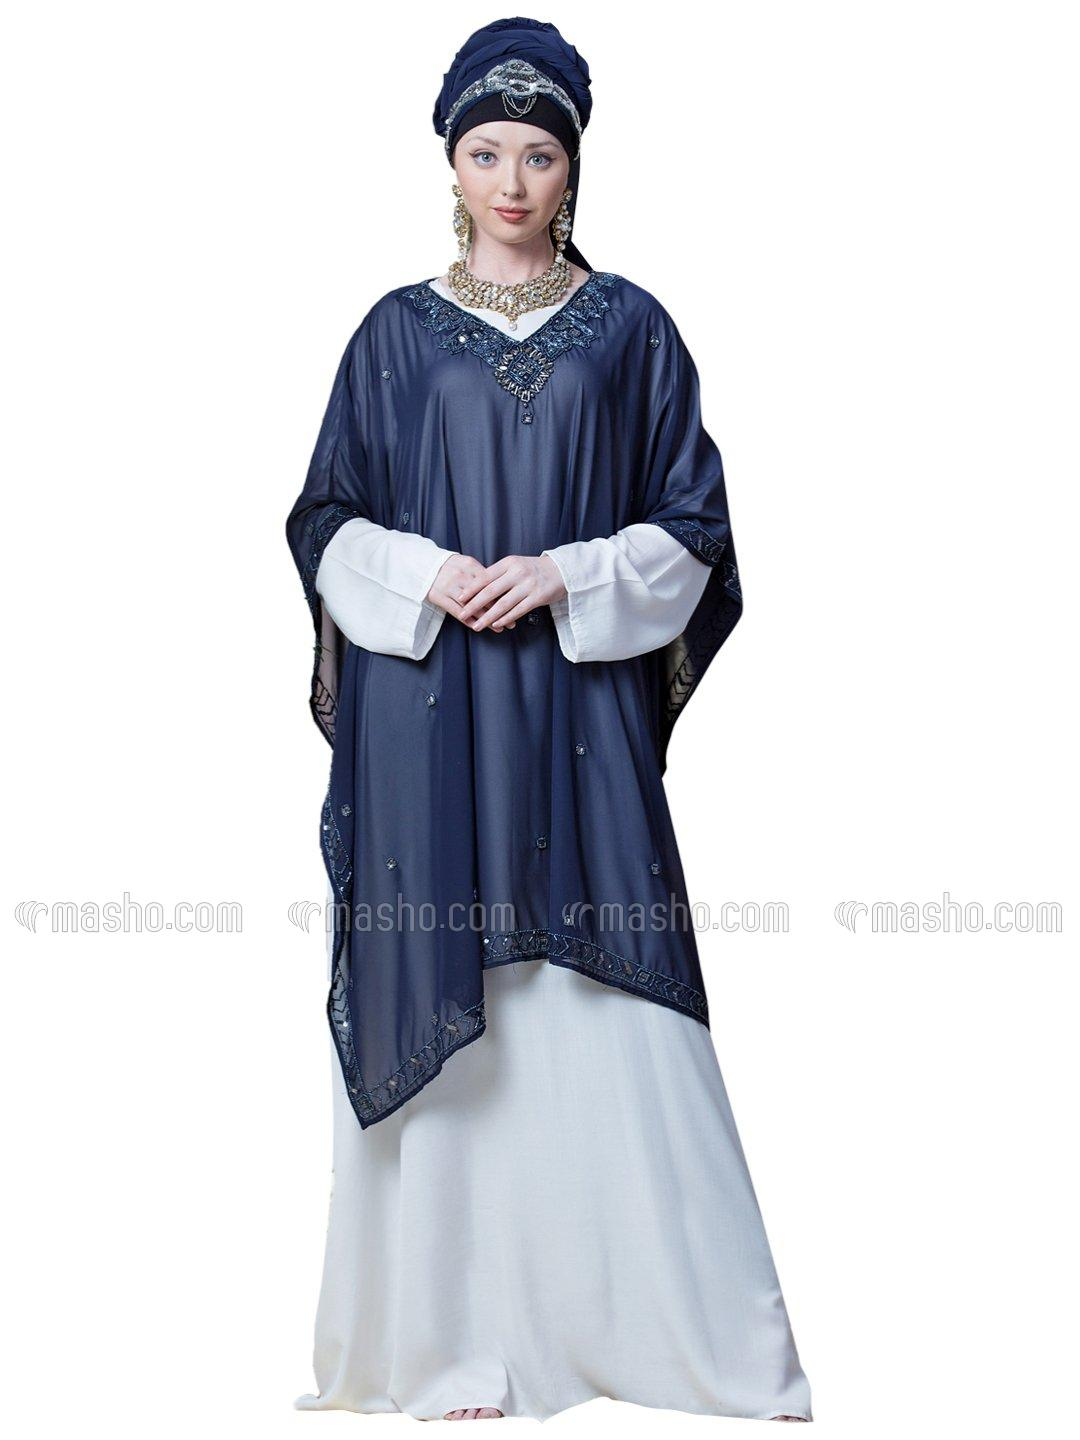 Georgette Double Layer With Embellished Party Abaya In Blue And White